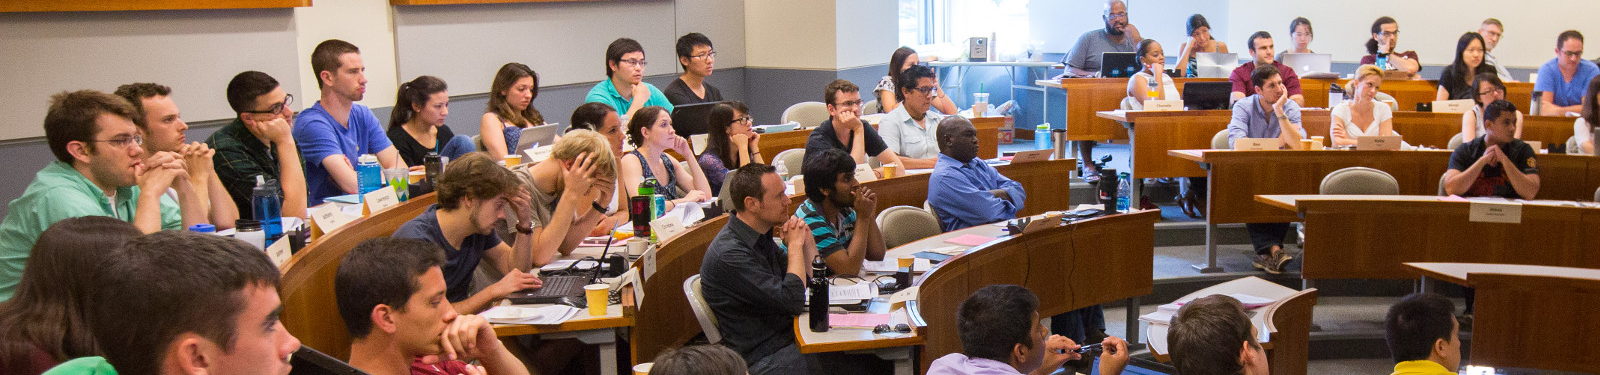 UMAss Amherst students attend a lecture.